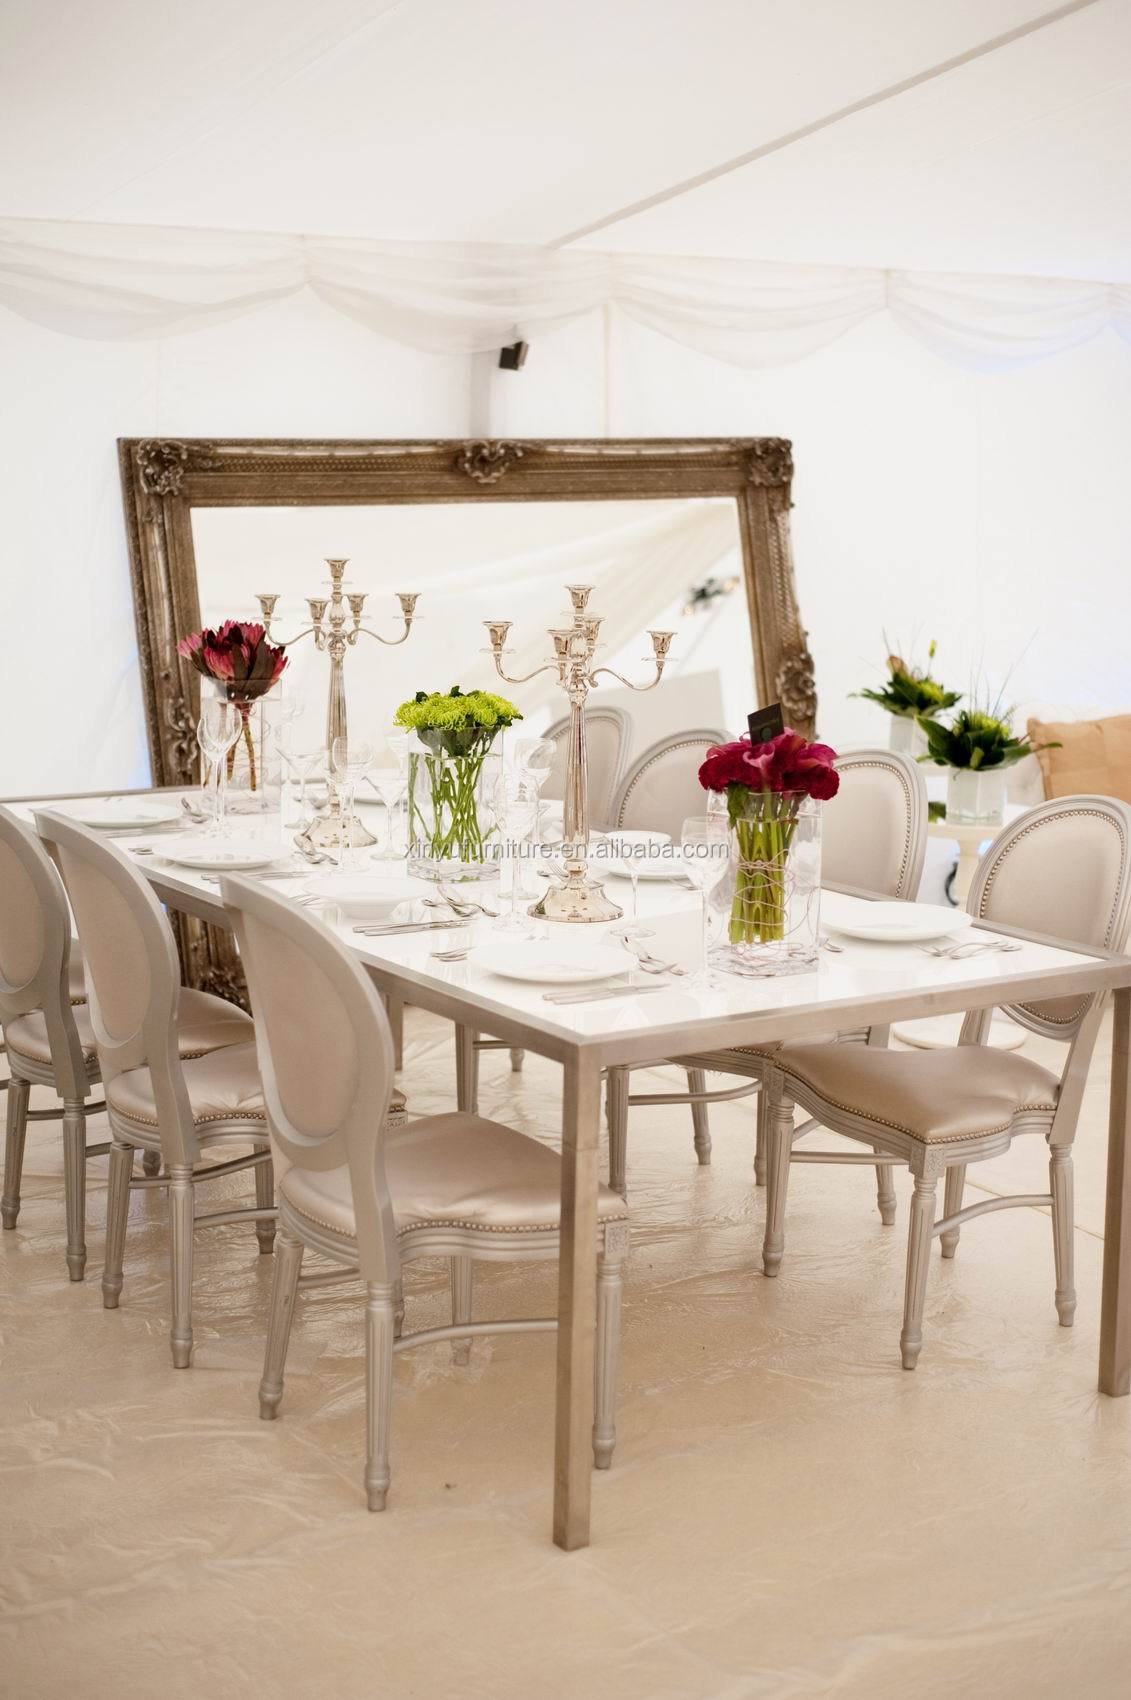 European Style White Dining Table And Chair Set Xy0755  : HT10ieDFLBXXXagOFbXC from www.alibaba.com size 1131 x 1700 jpeg 156kB